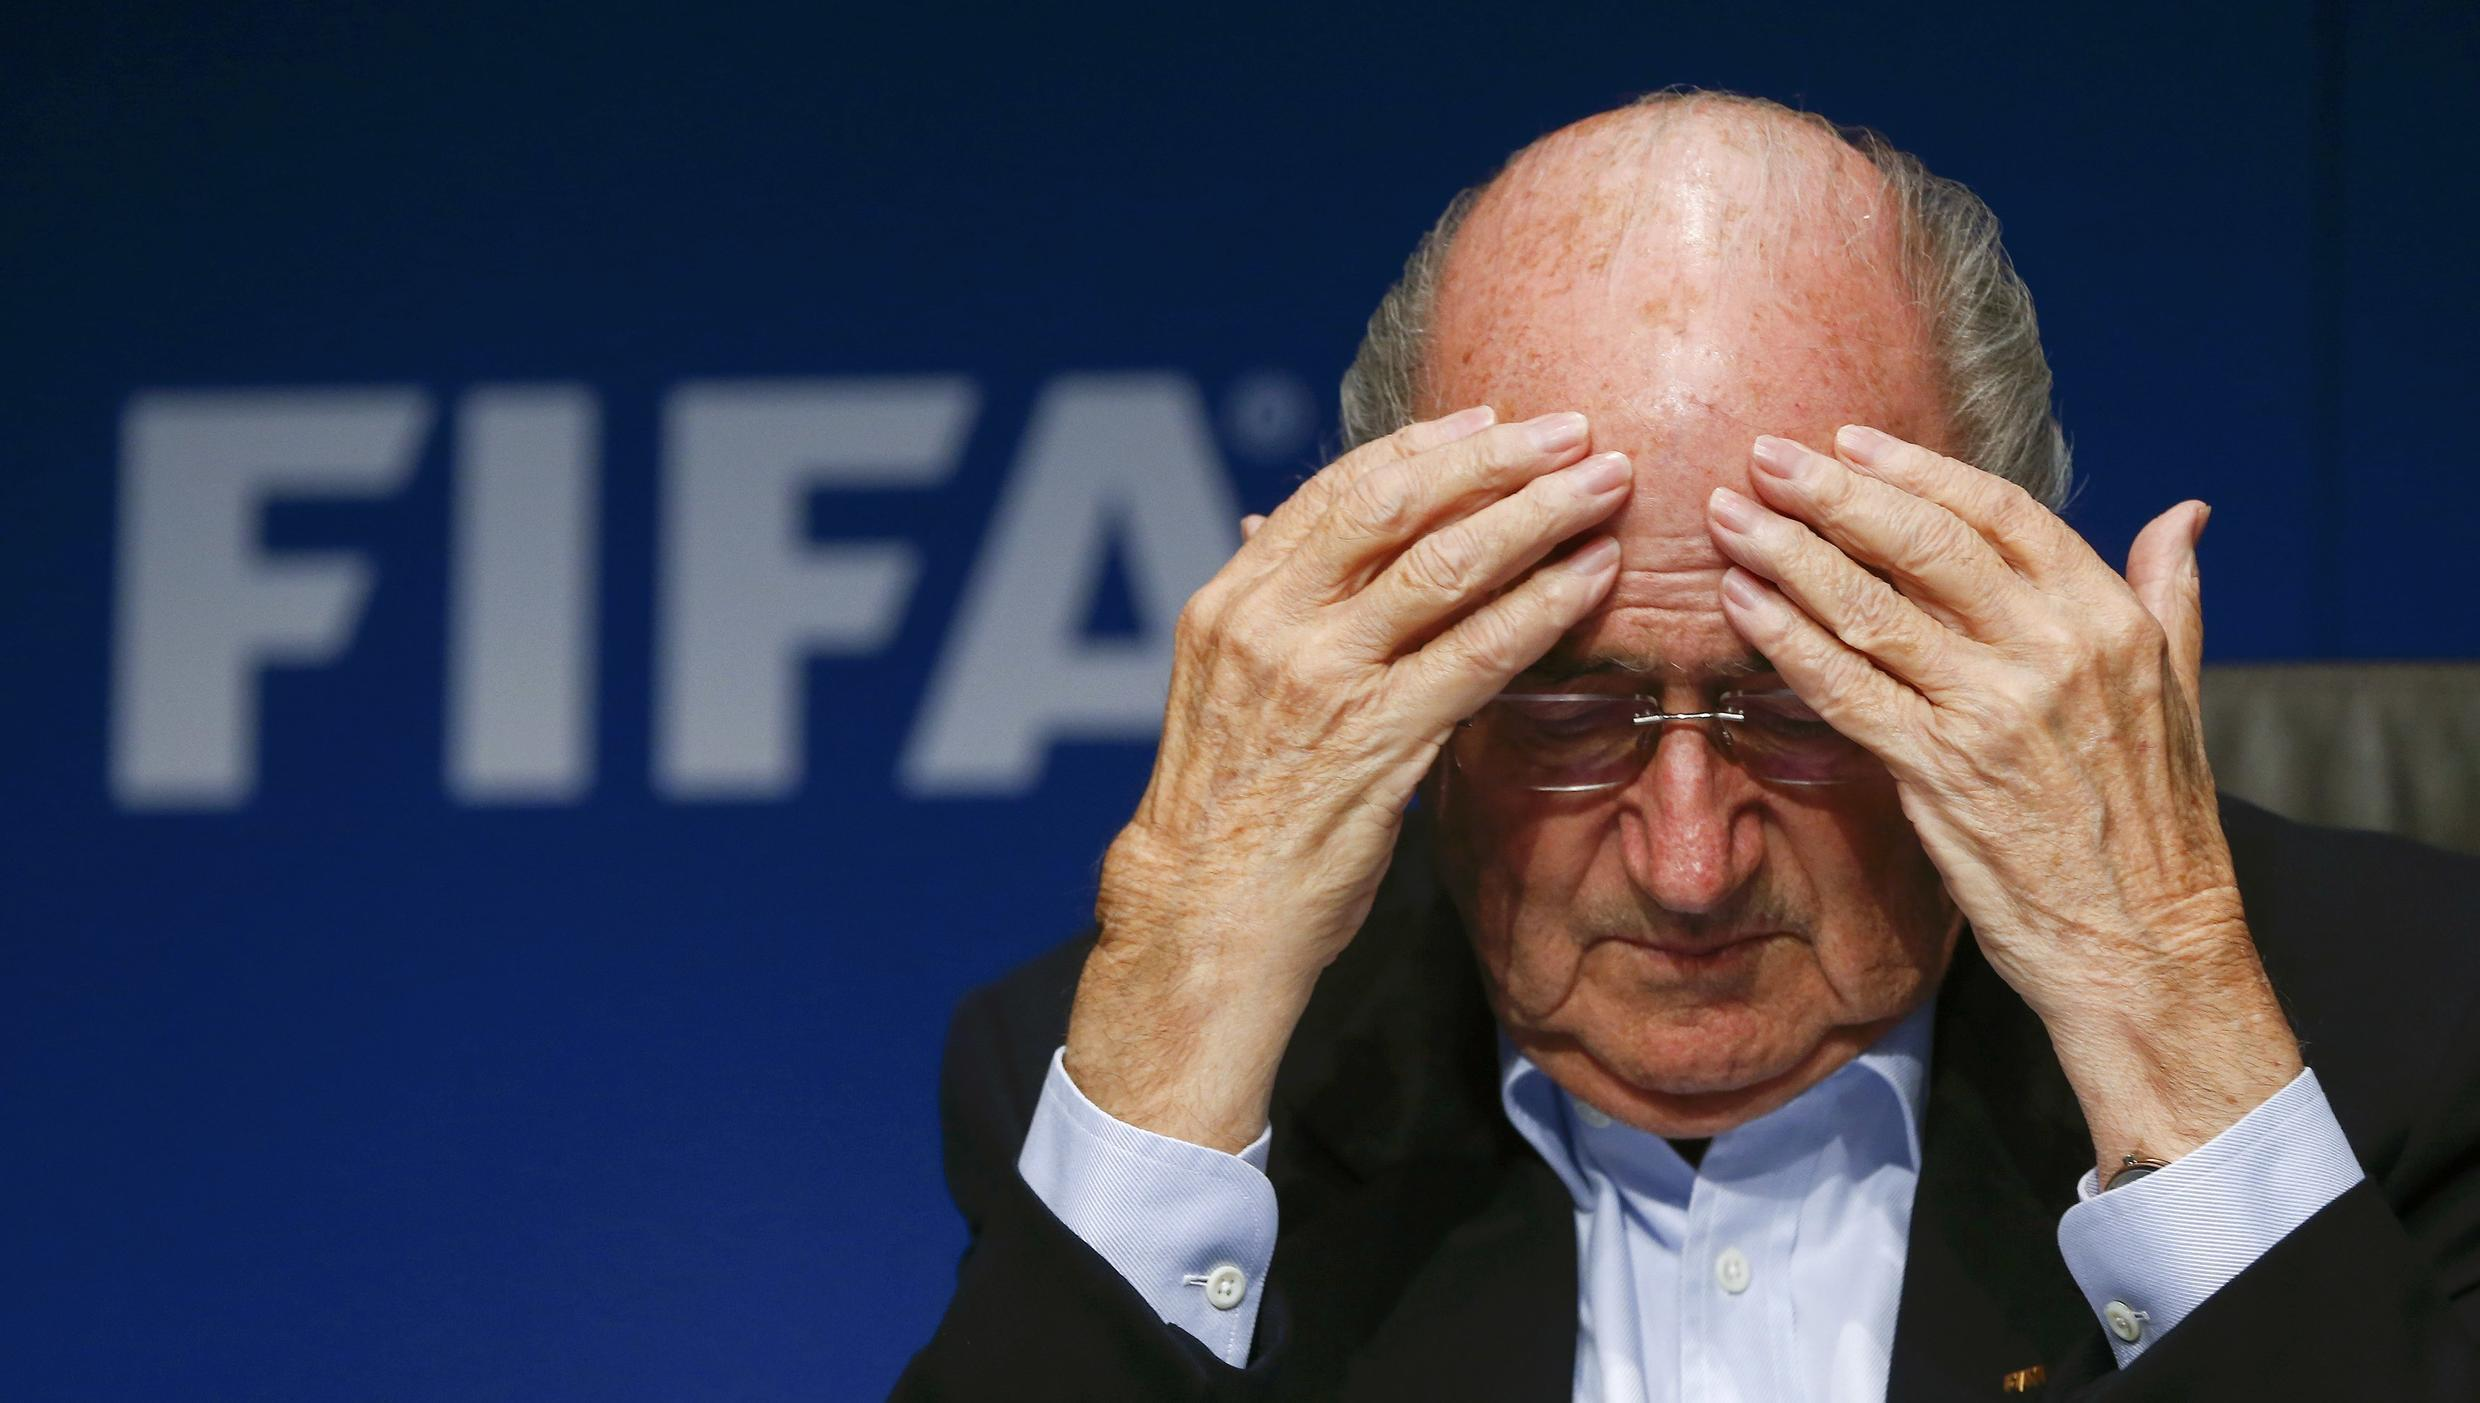 FIFA President Sepp Blatter has questioned the timing of arrests of top FIFA officials.